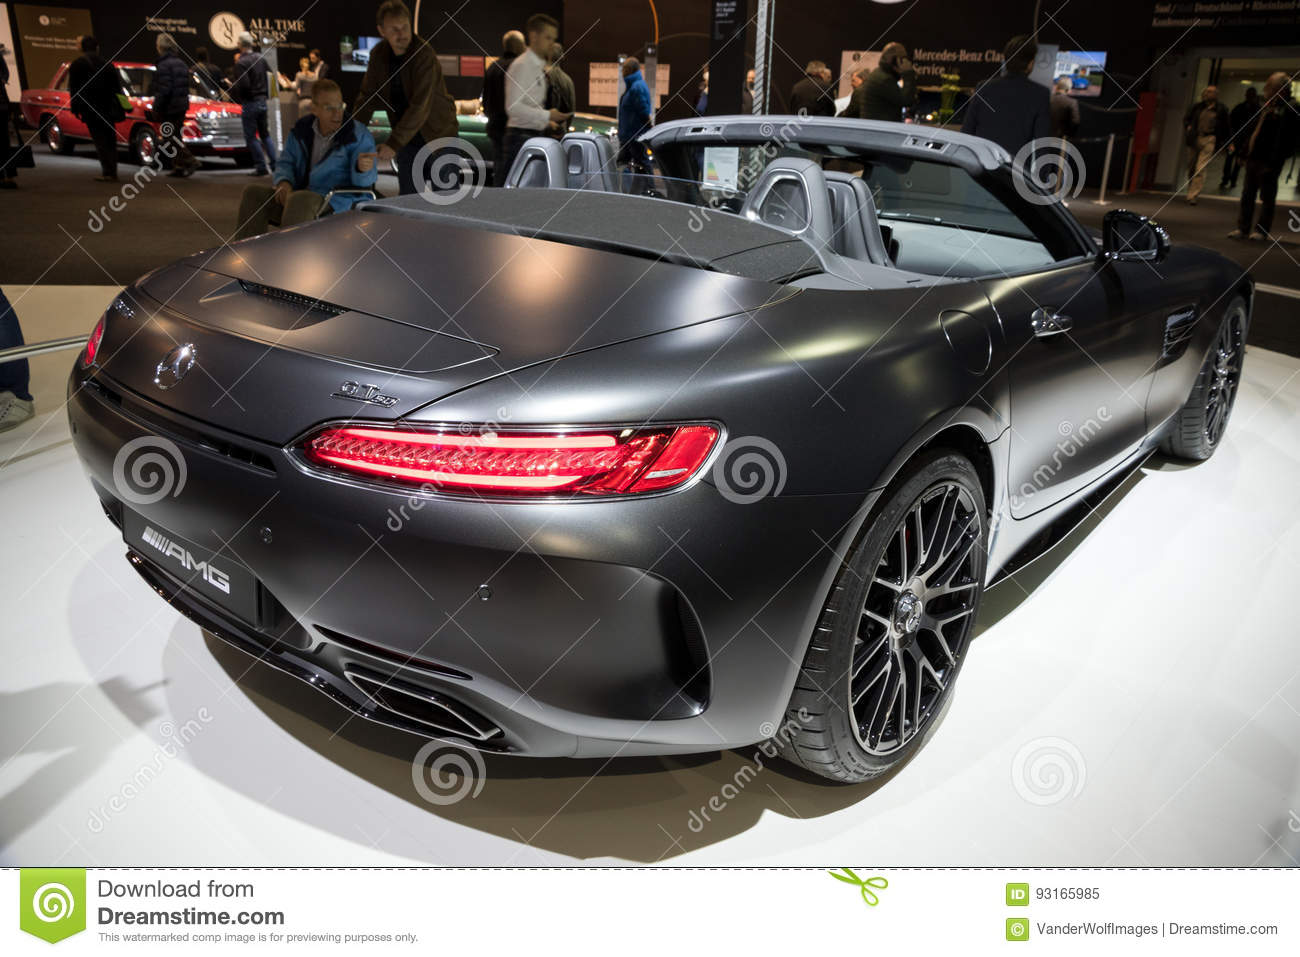 2017 mercedes benz amg gt 50 edition sports car editorial. Black Bedroom Furniture Sets. Home Design Ideas